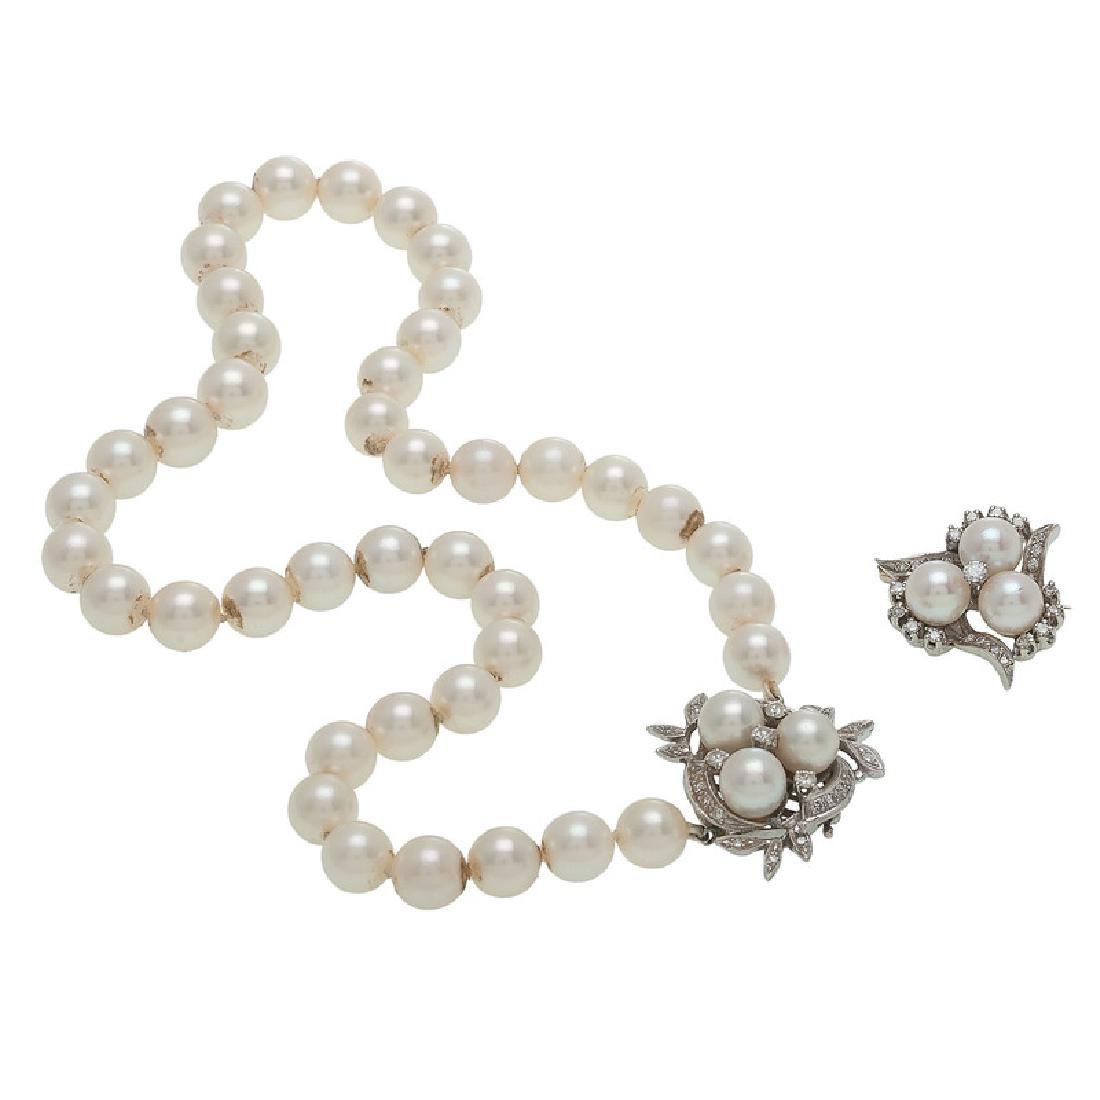 14 Karat White Gold Pearl Necklace and Brooch